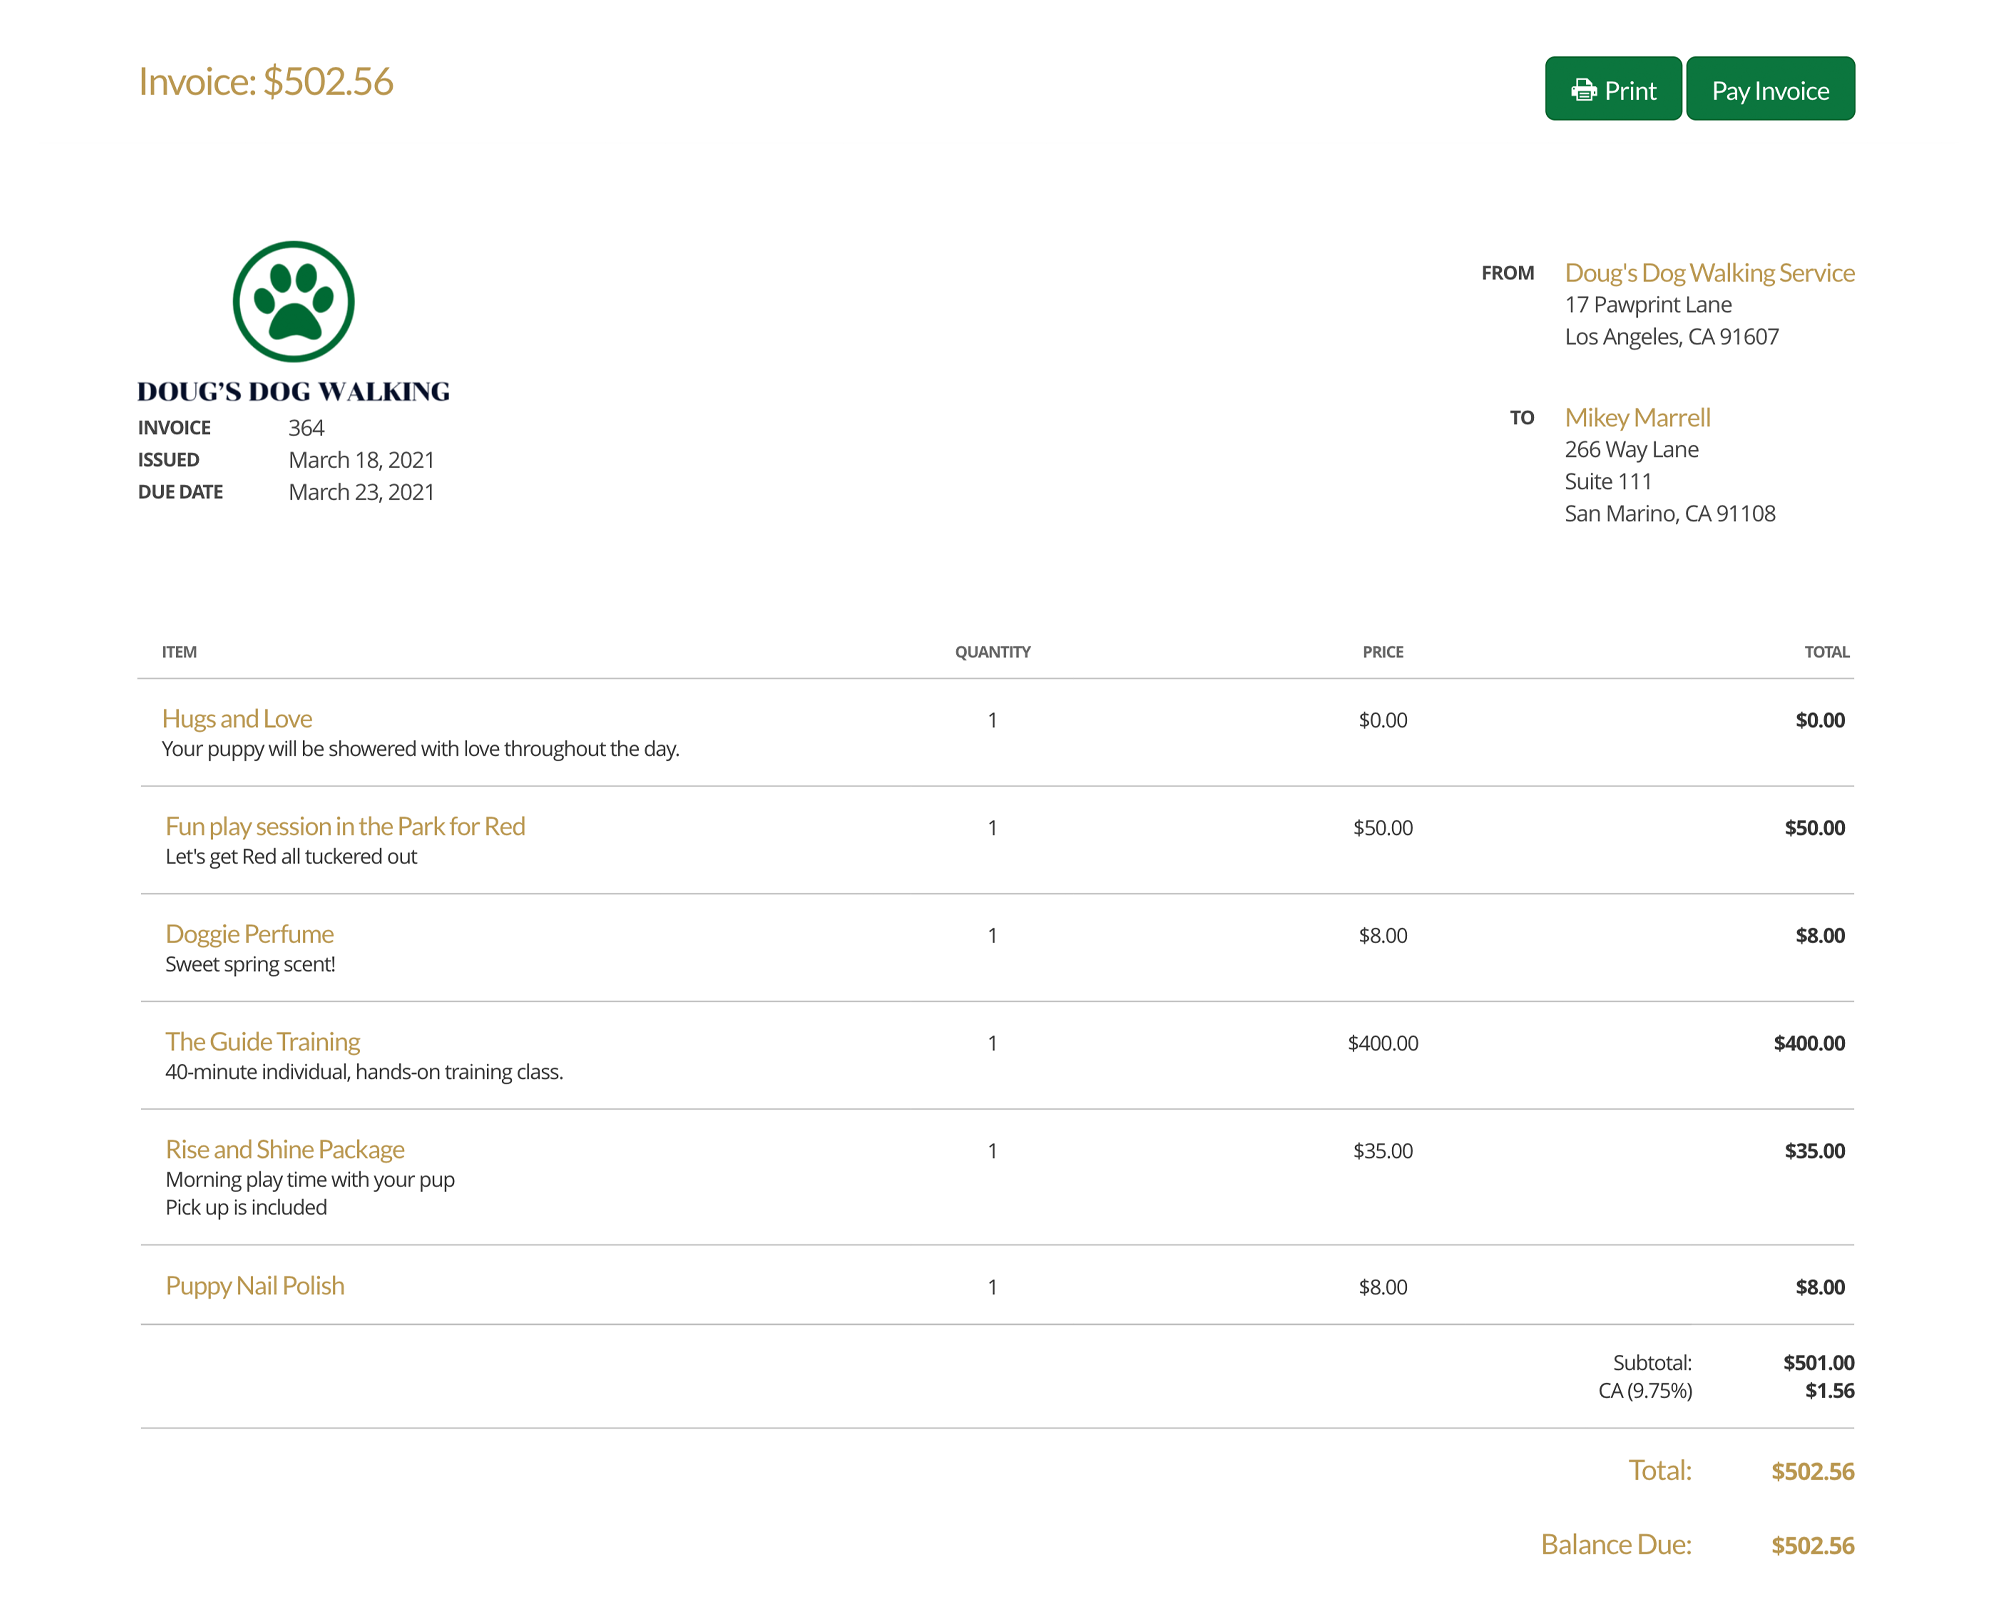 17hats Features Invoices